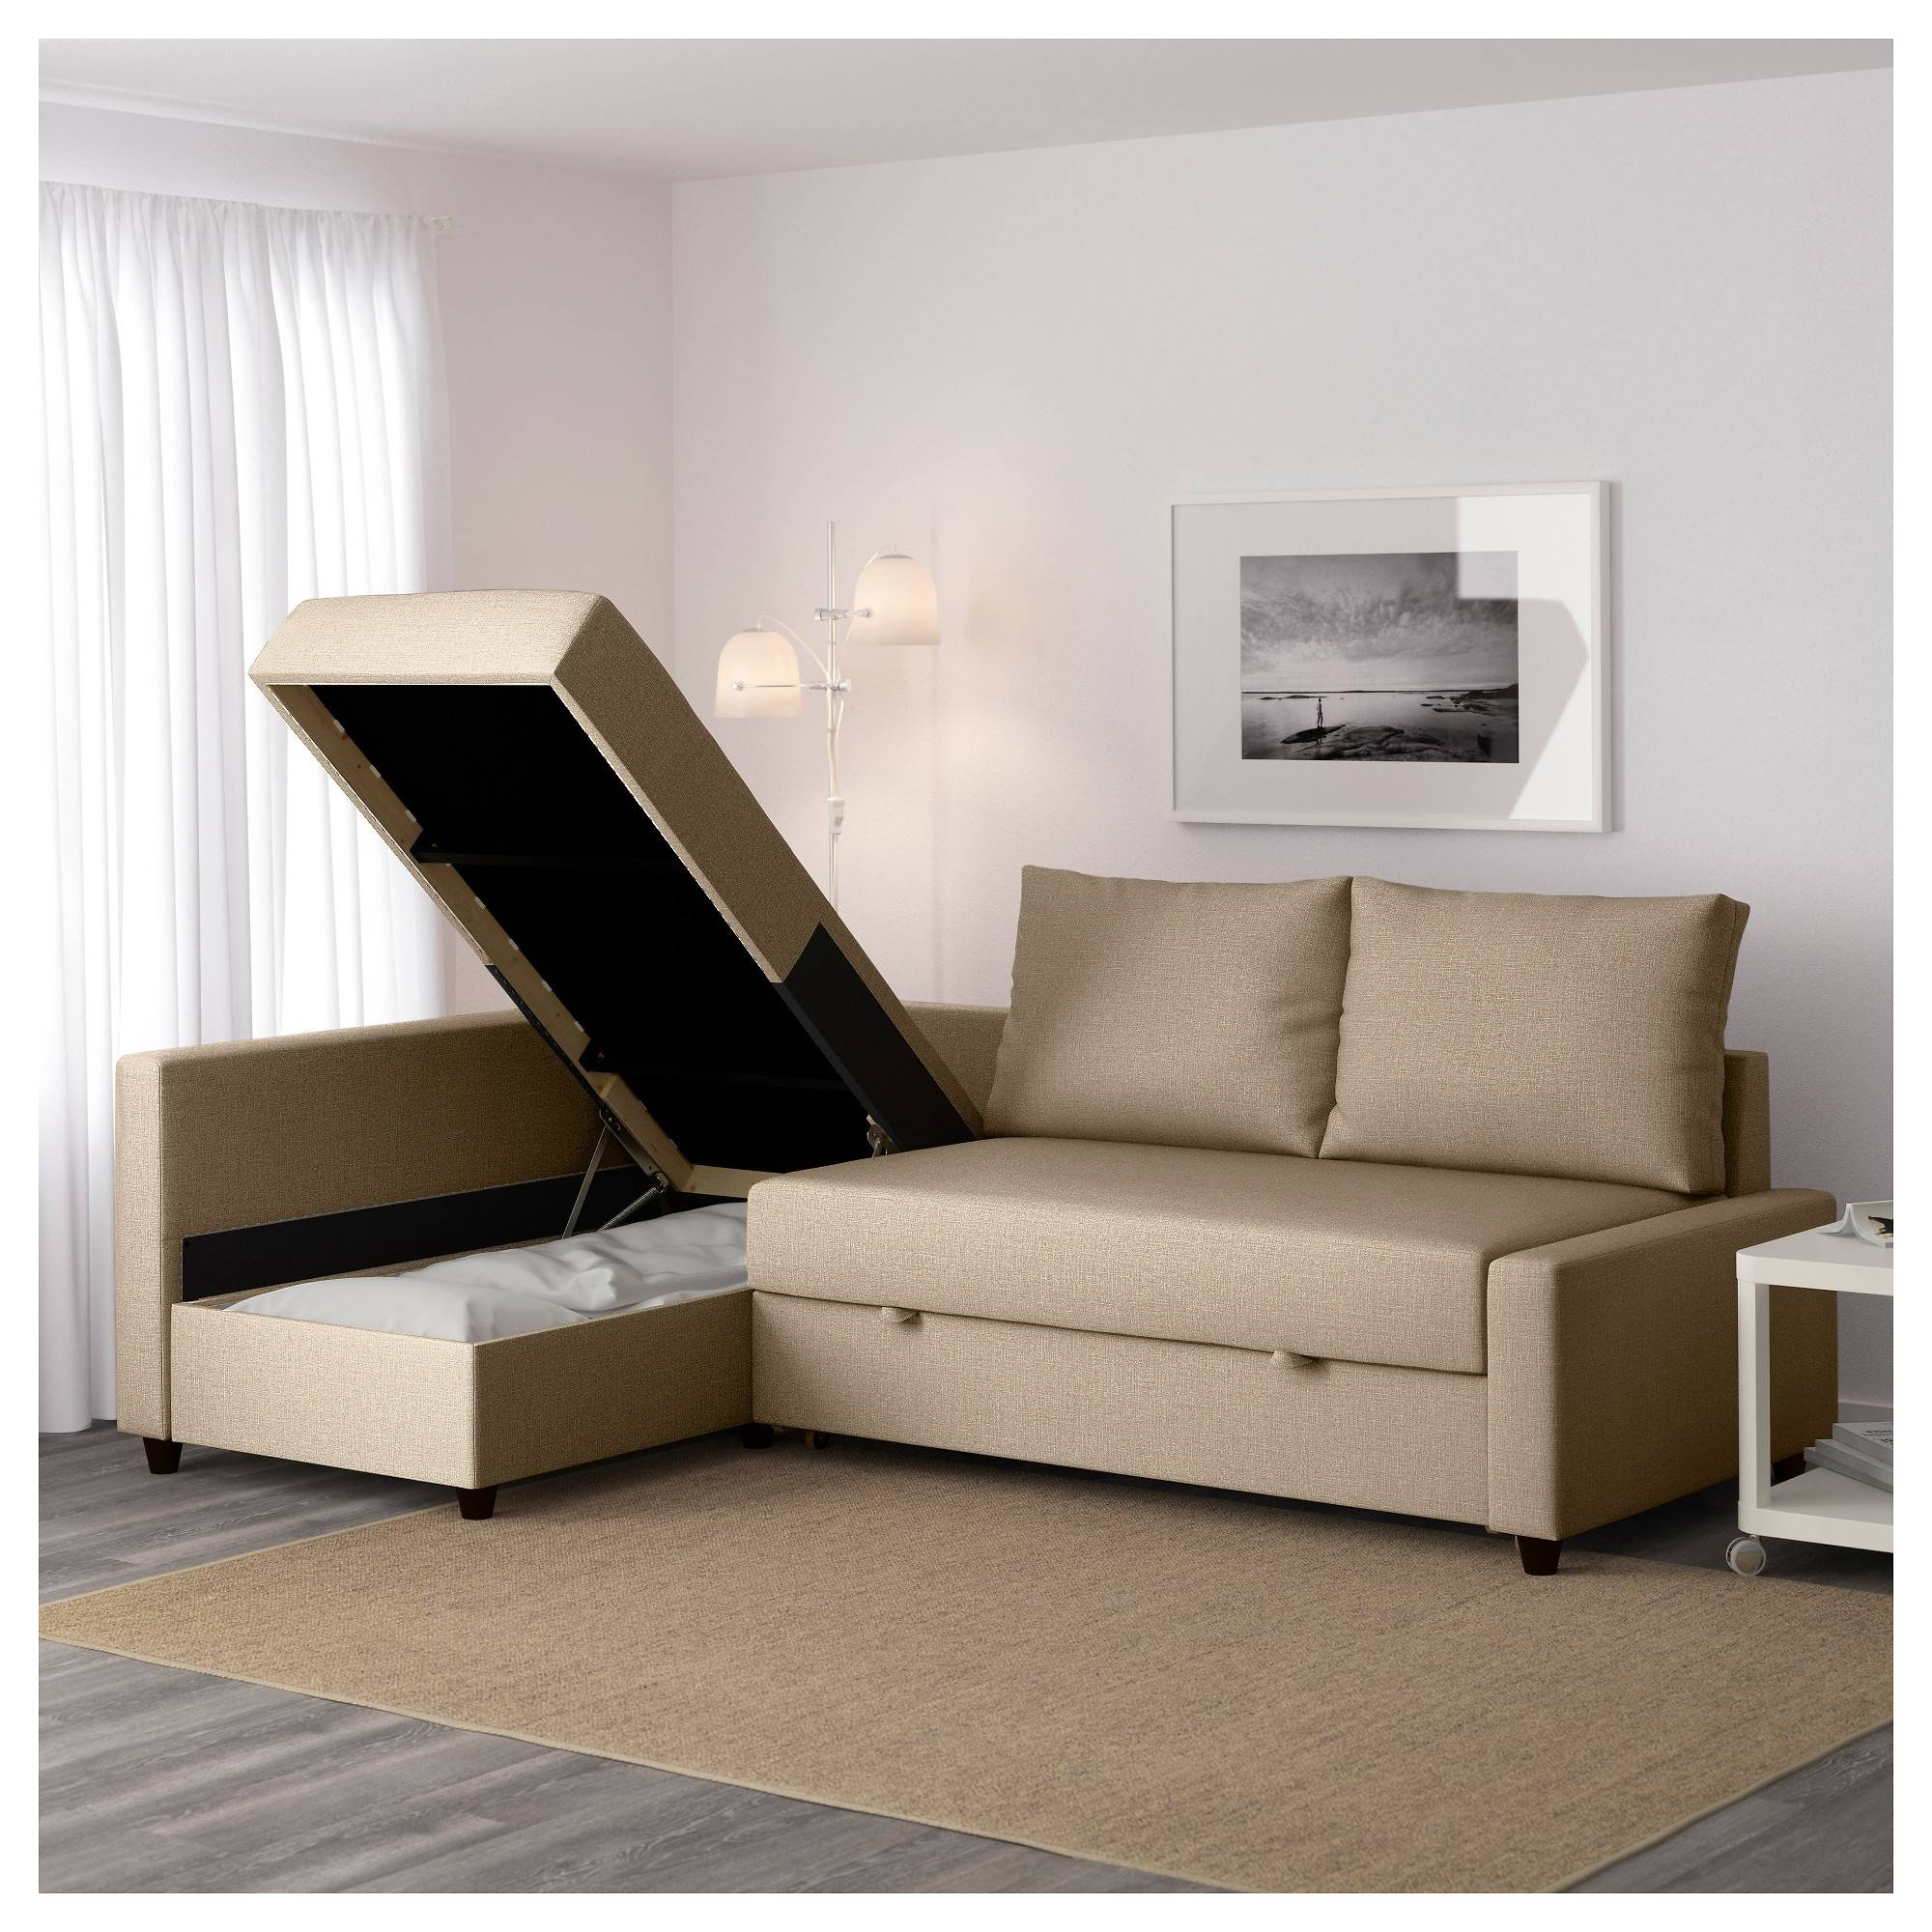 Friheten Sleeper Sectional,3 Seat W/storage - Skiftebo Dark Gray inside Ikea Sectional Sofa Sleeper (Image 3 of 25)